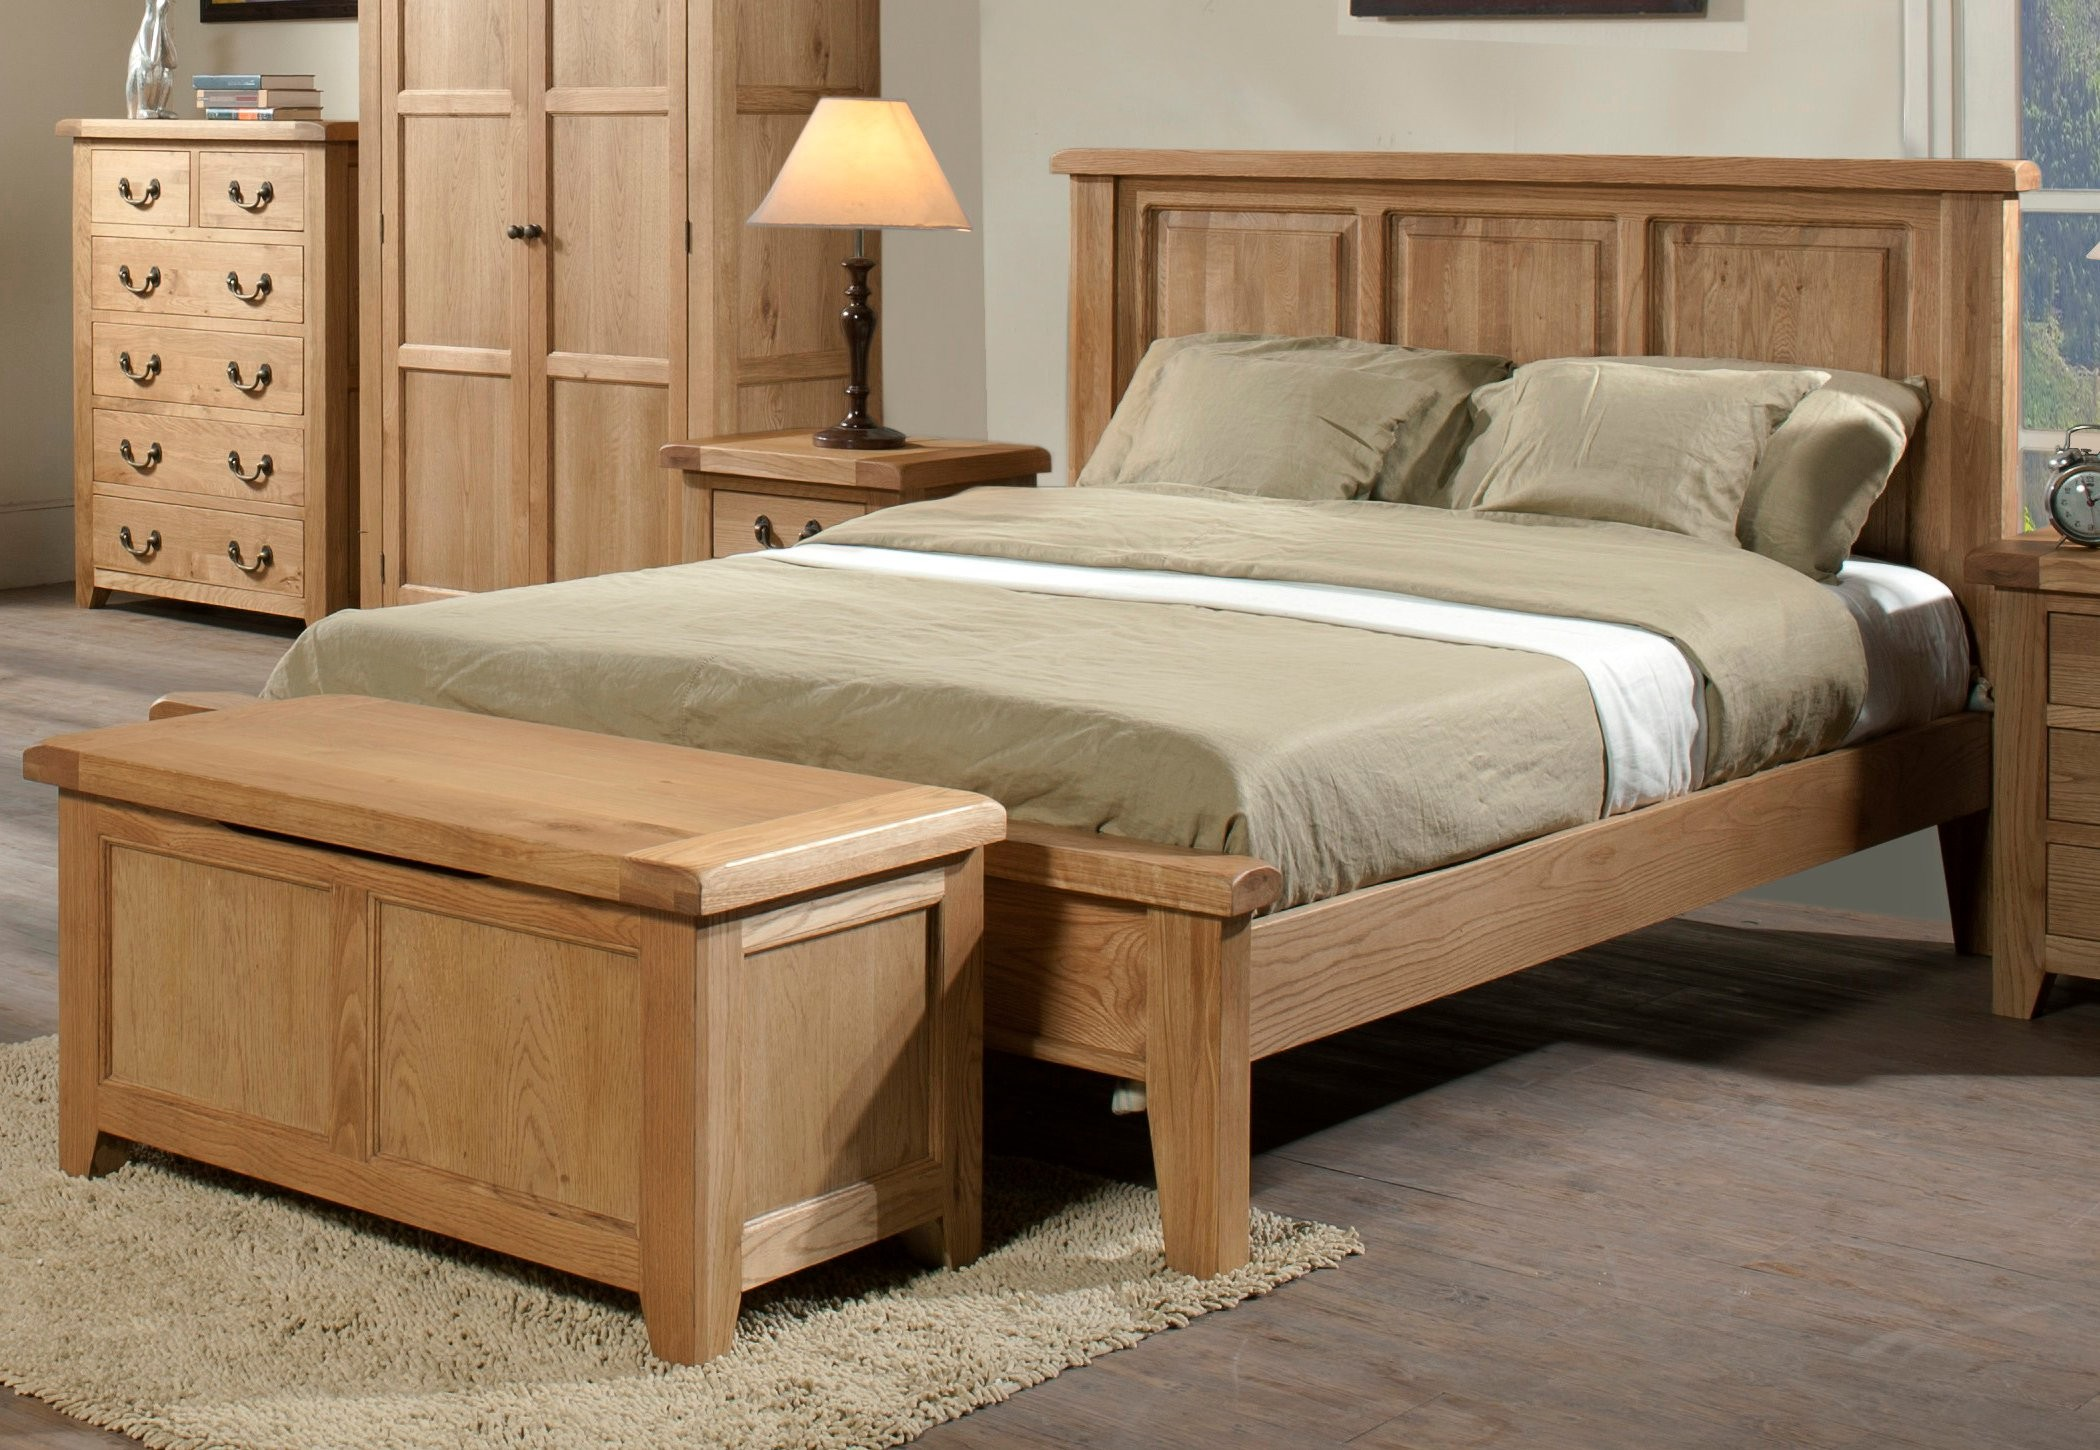 End Of Bed Benches Extra Storage And Beauty Homesfeed